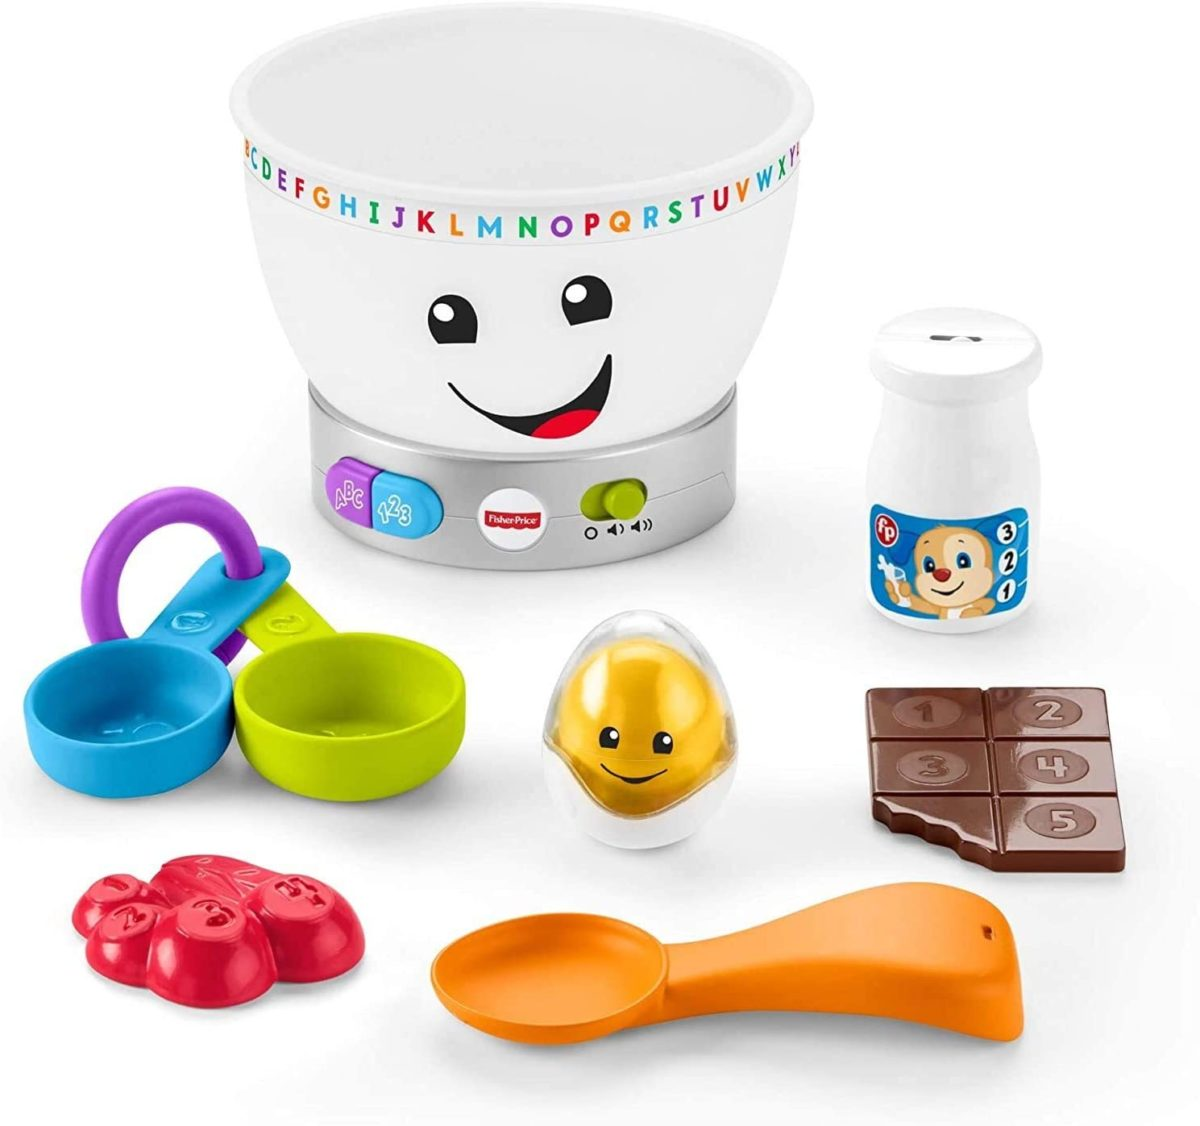 22 top quality fisher-price toys that also educational and entertaining | parenting questions | mamas uncut 618cbmxjrnl. ac sl1500